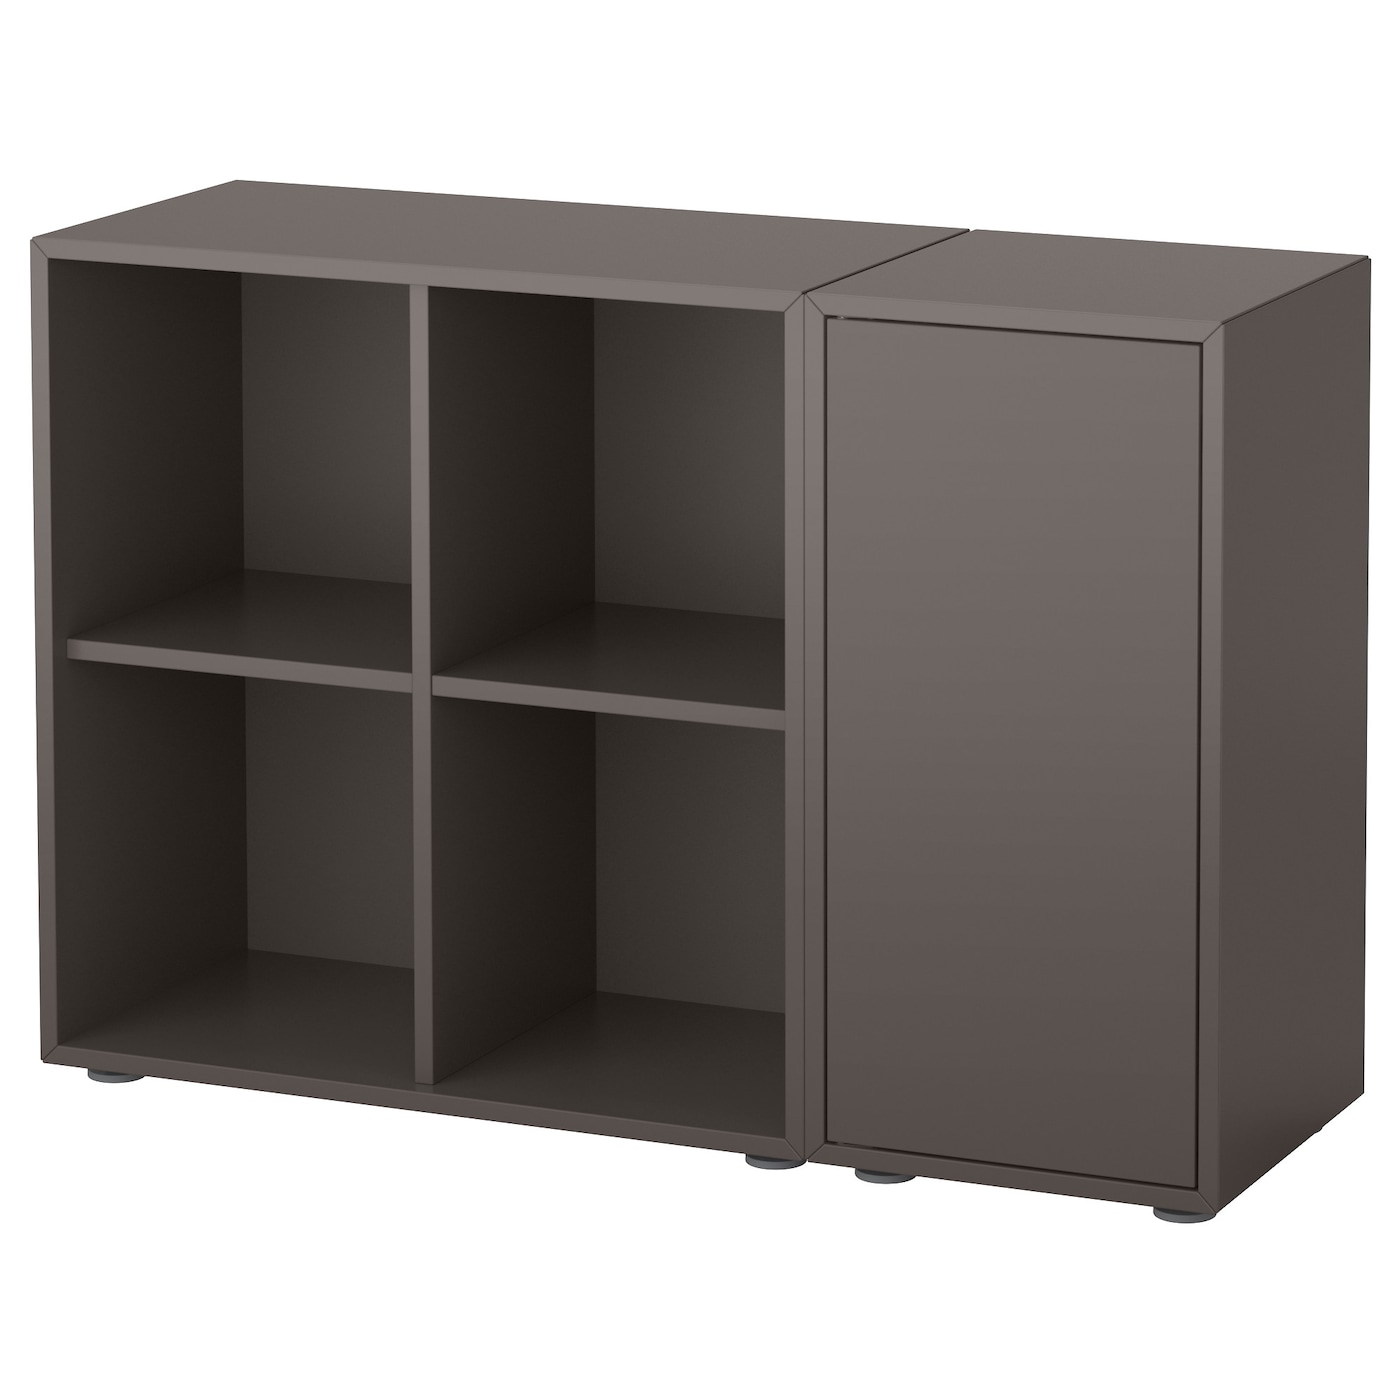 Eket Cabinet Combination With Feet Dark Grey Add To Wishlist Ikea